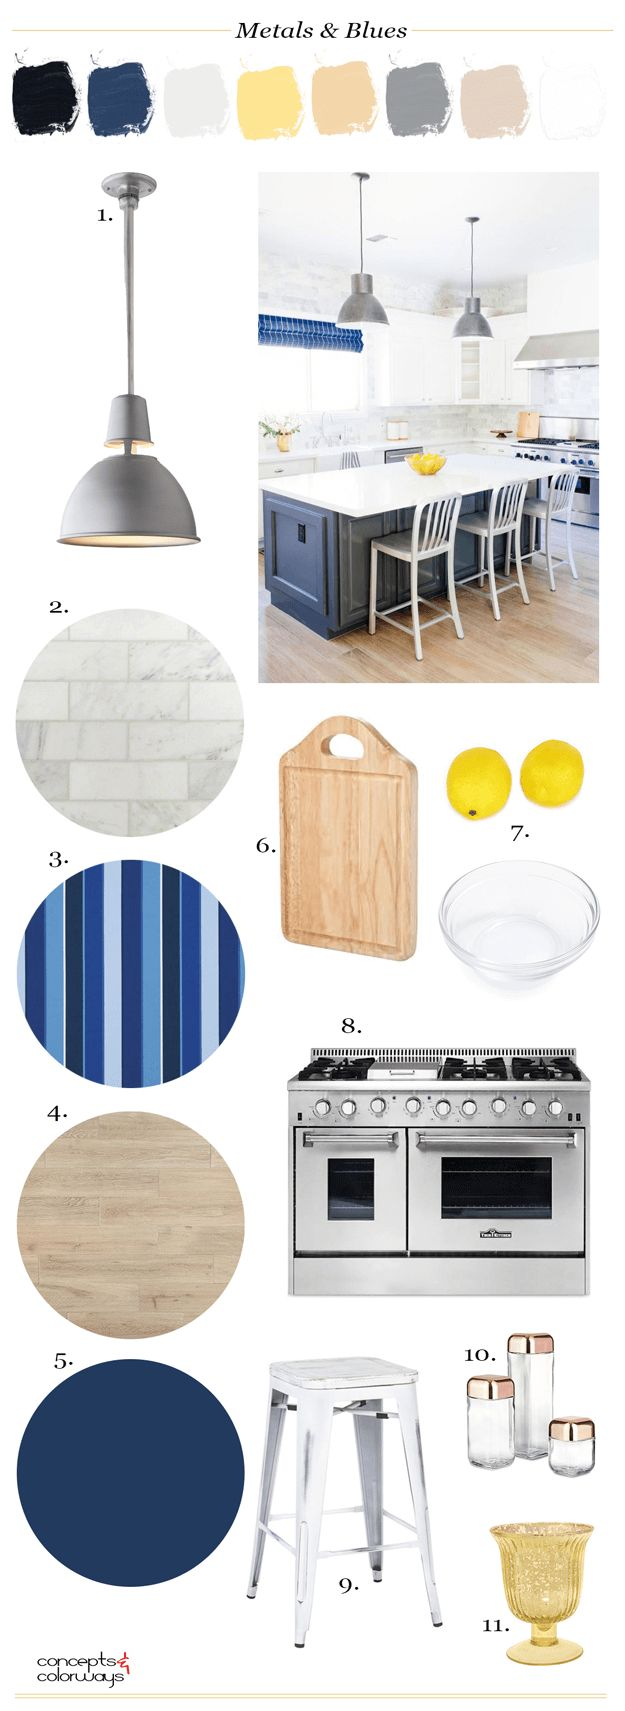 white kitchen with navy blue and stainless steel accents, pantone navy peony, navy blue, nautical style kitchen, navy and white, interior styling ideas, interior design inspiration, gold glass vase, glass canisters with copper lids, white metal stool, wood cutting board, stainless steel range, navy paint, taupe wood flooring, striped navy fabric, pale gray marble tile, galvanized metal pendant light, paint palettes